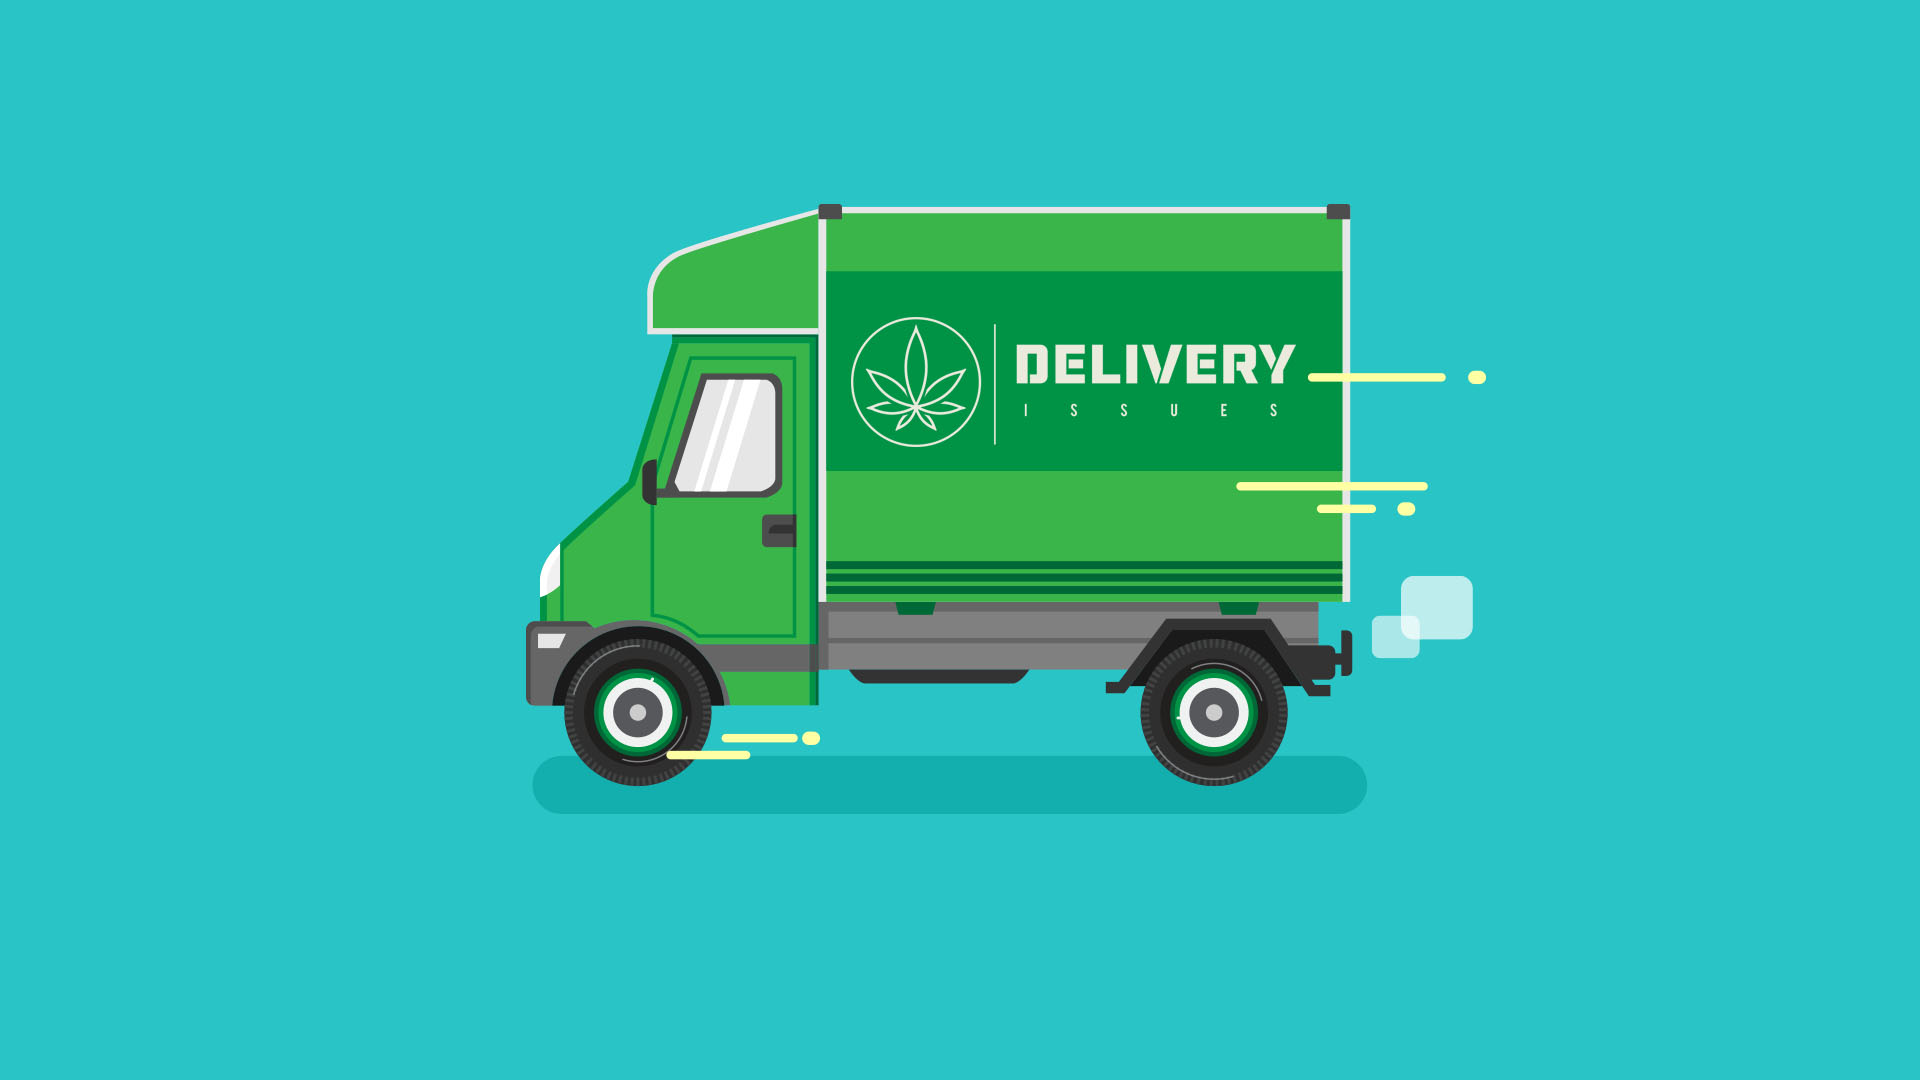 There are some legal issues with the cannabis delivery industry